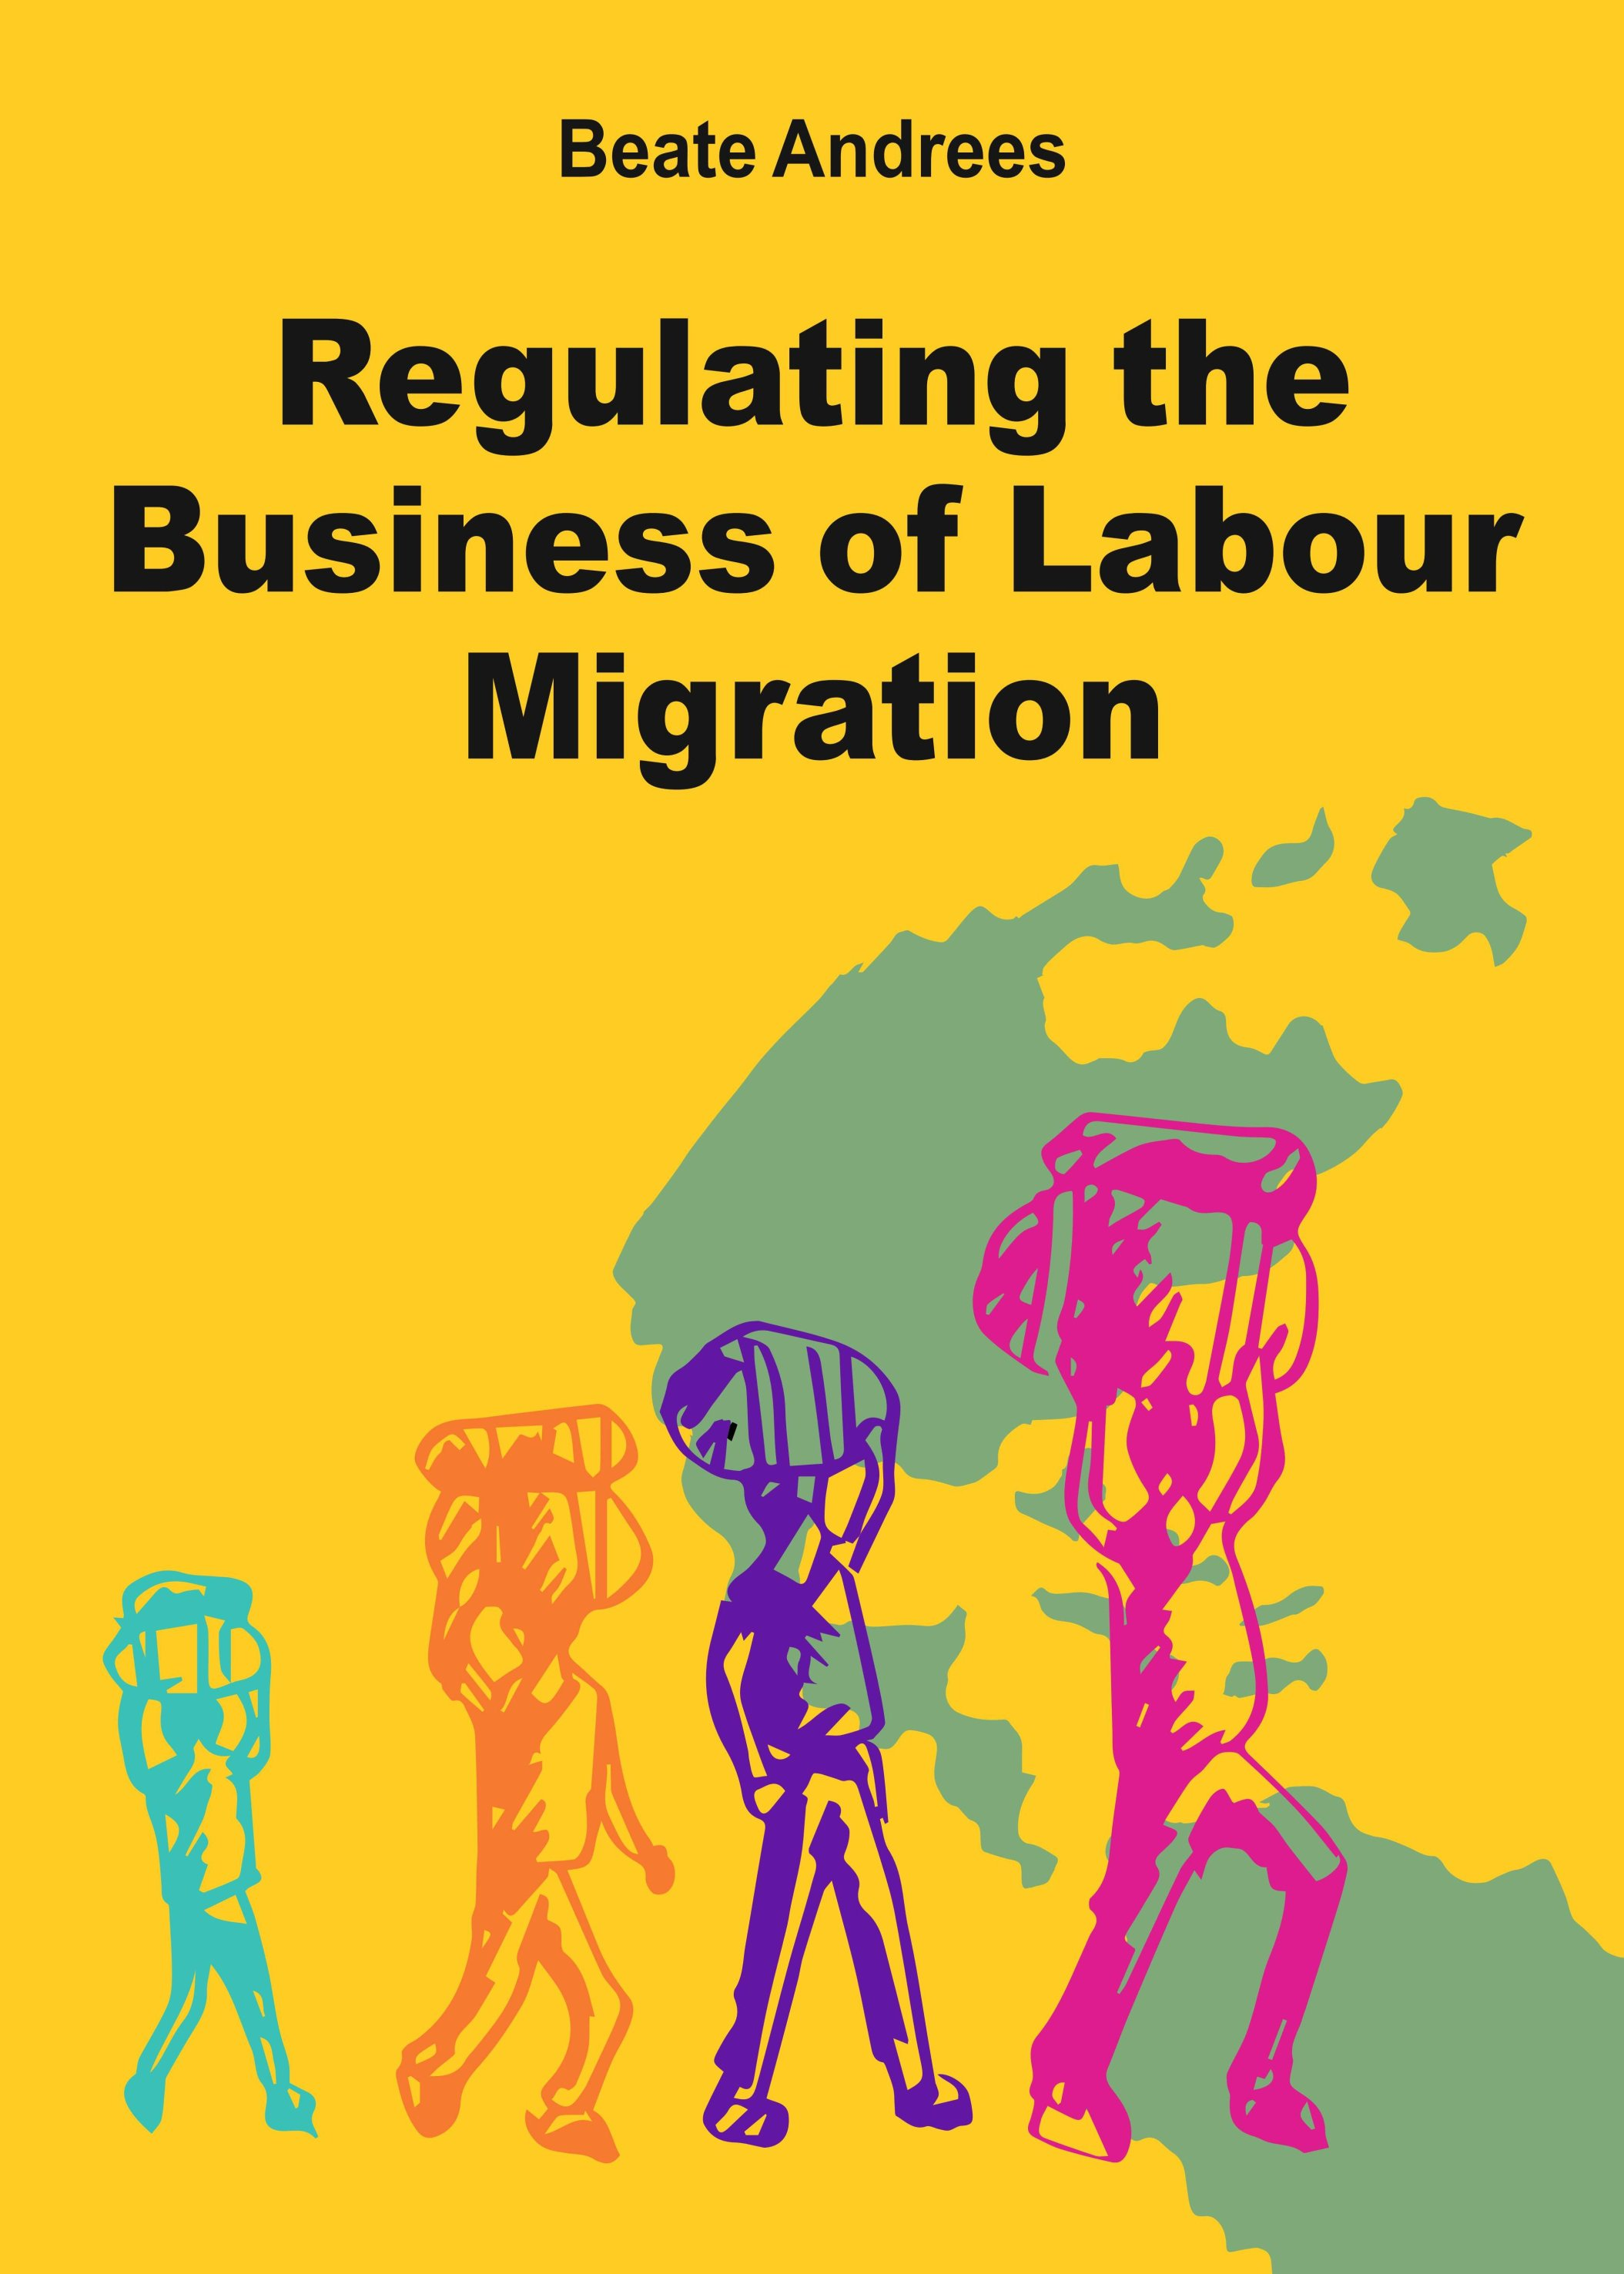 Regulating the Business of Labour Migration Intermediaries - Insightful thesis about labour migration